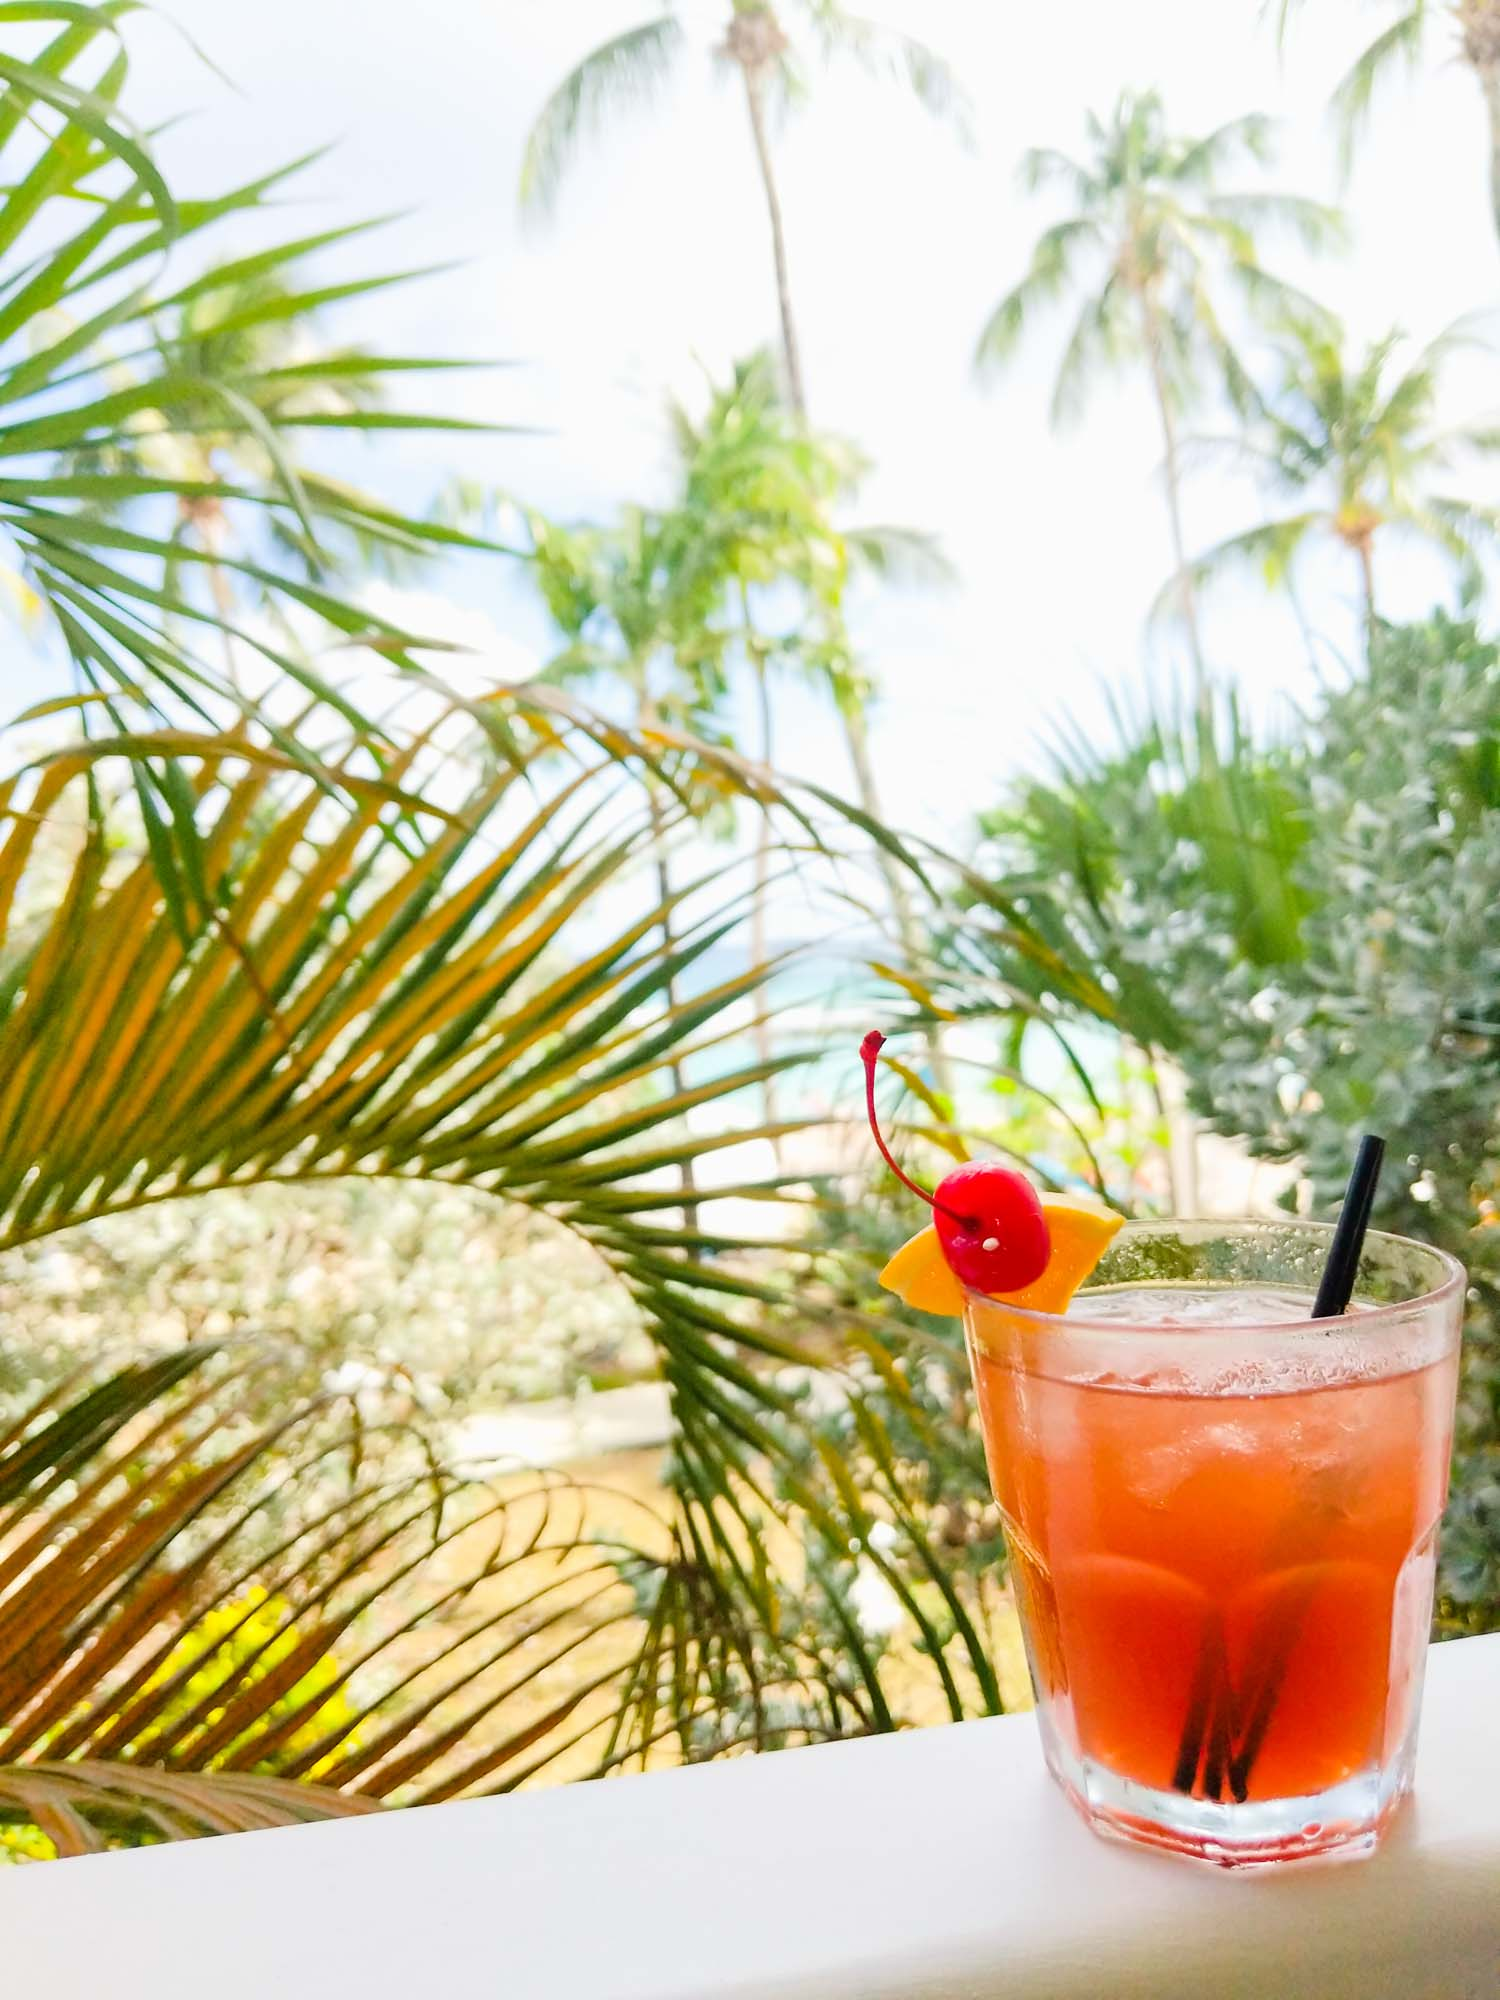 Jamaican rum punch, one of the most popular drinks in Jamaica, on a railing with palm trees in the back.